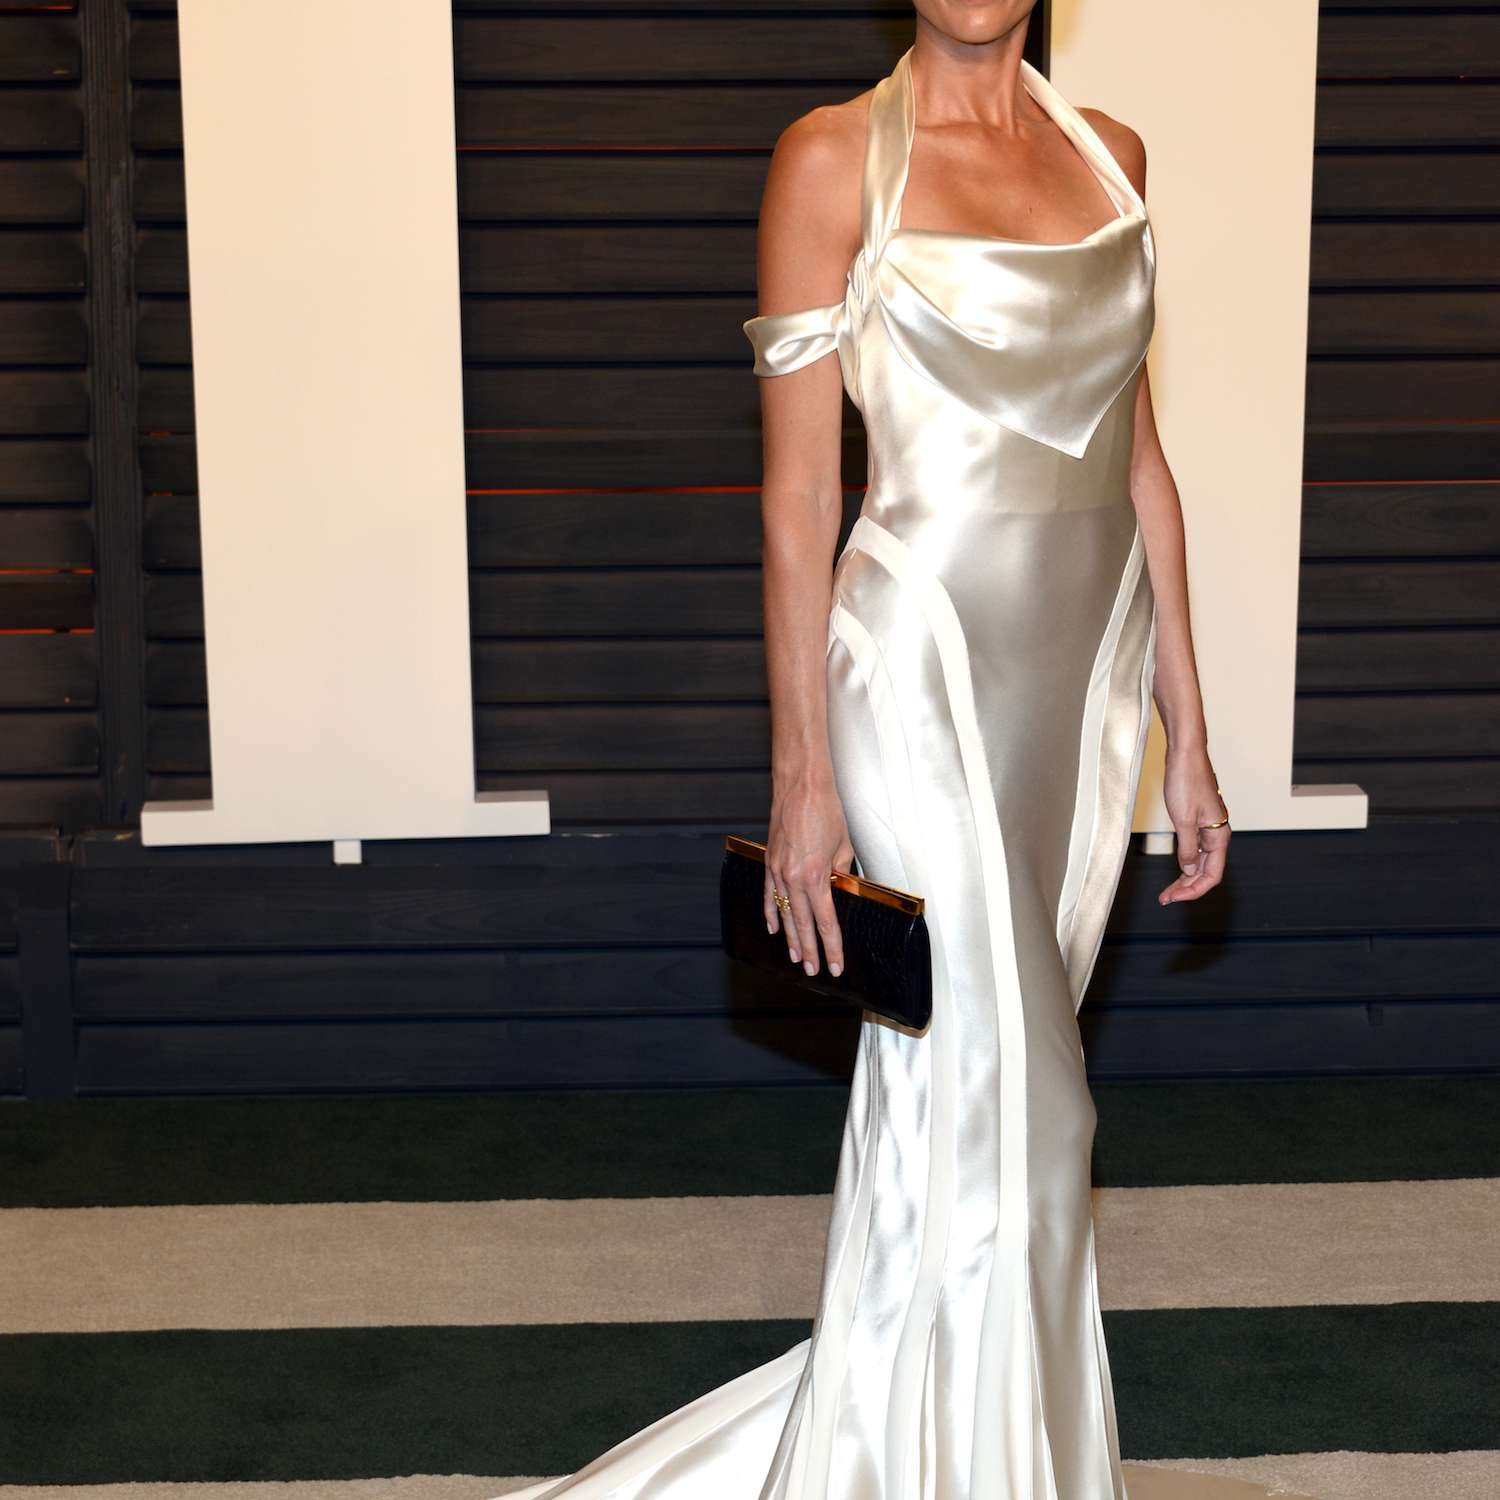 Liberty Ross at the 2016 Vanity Fair Oscars afterparty